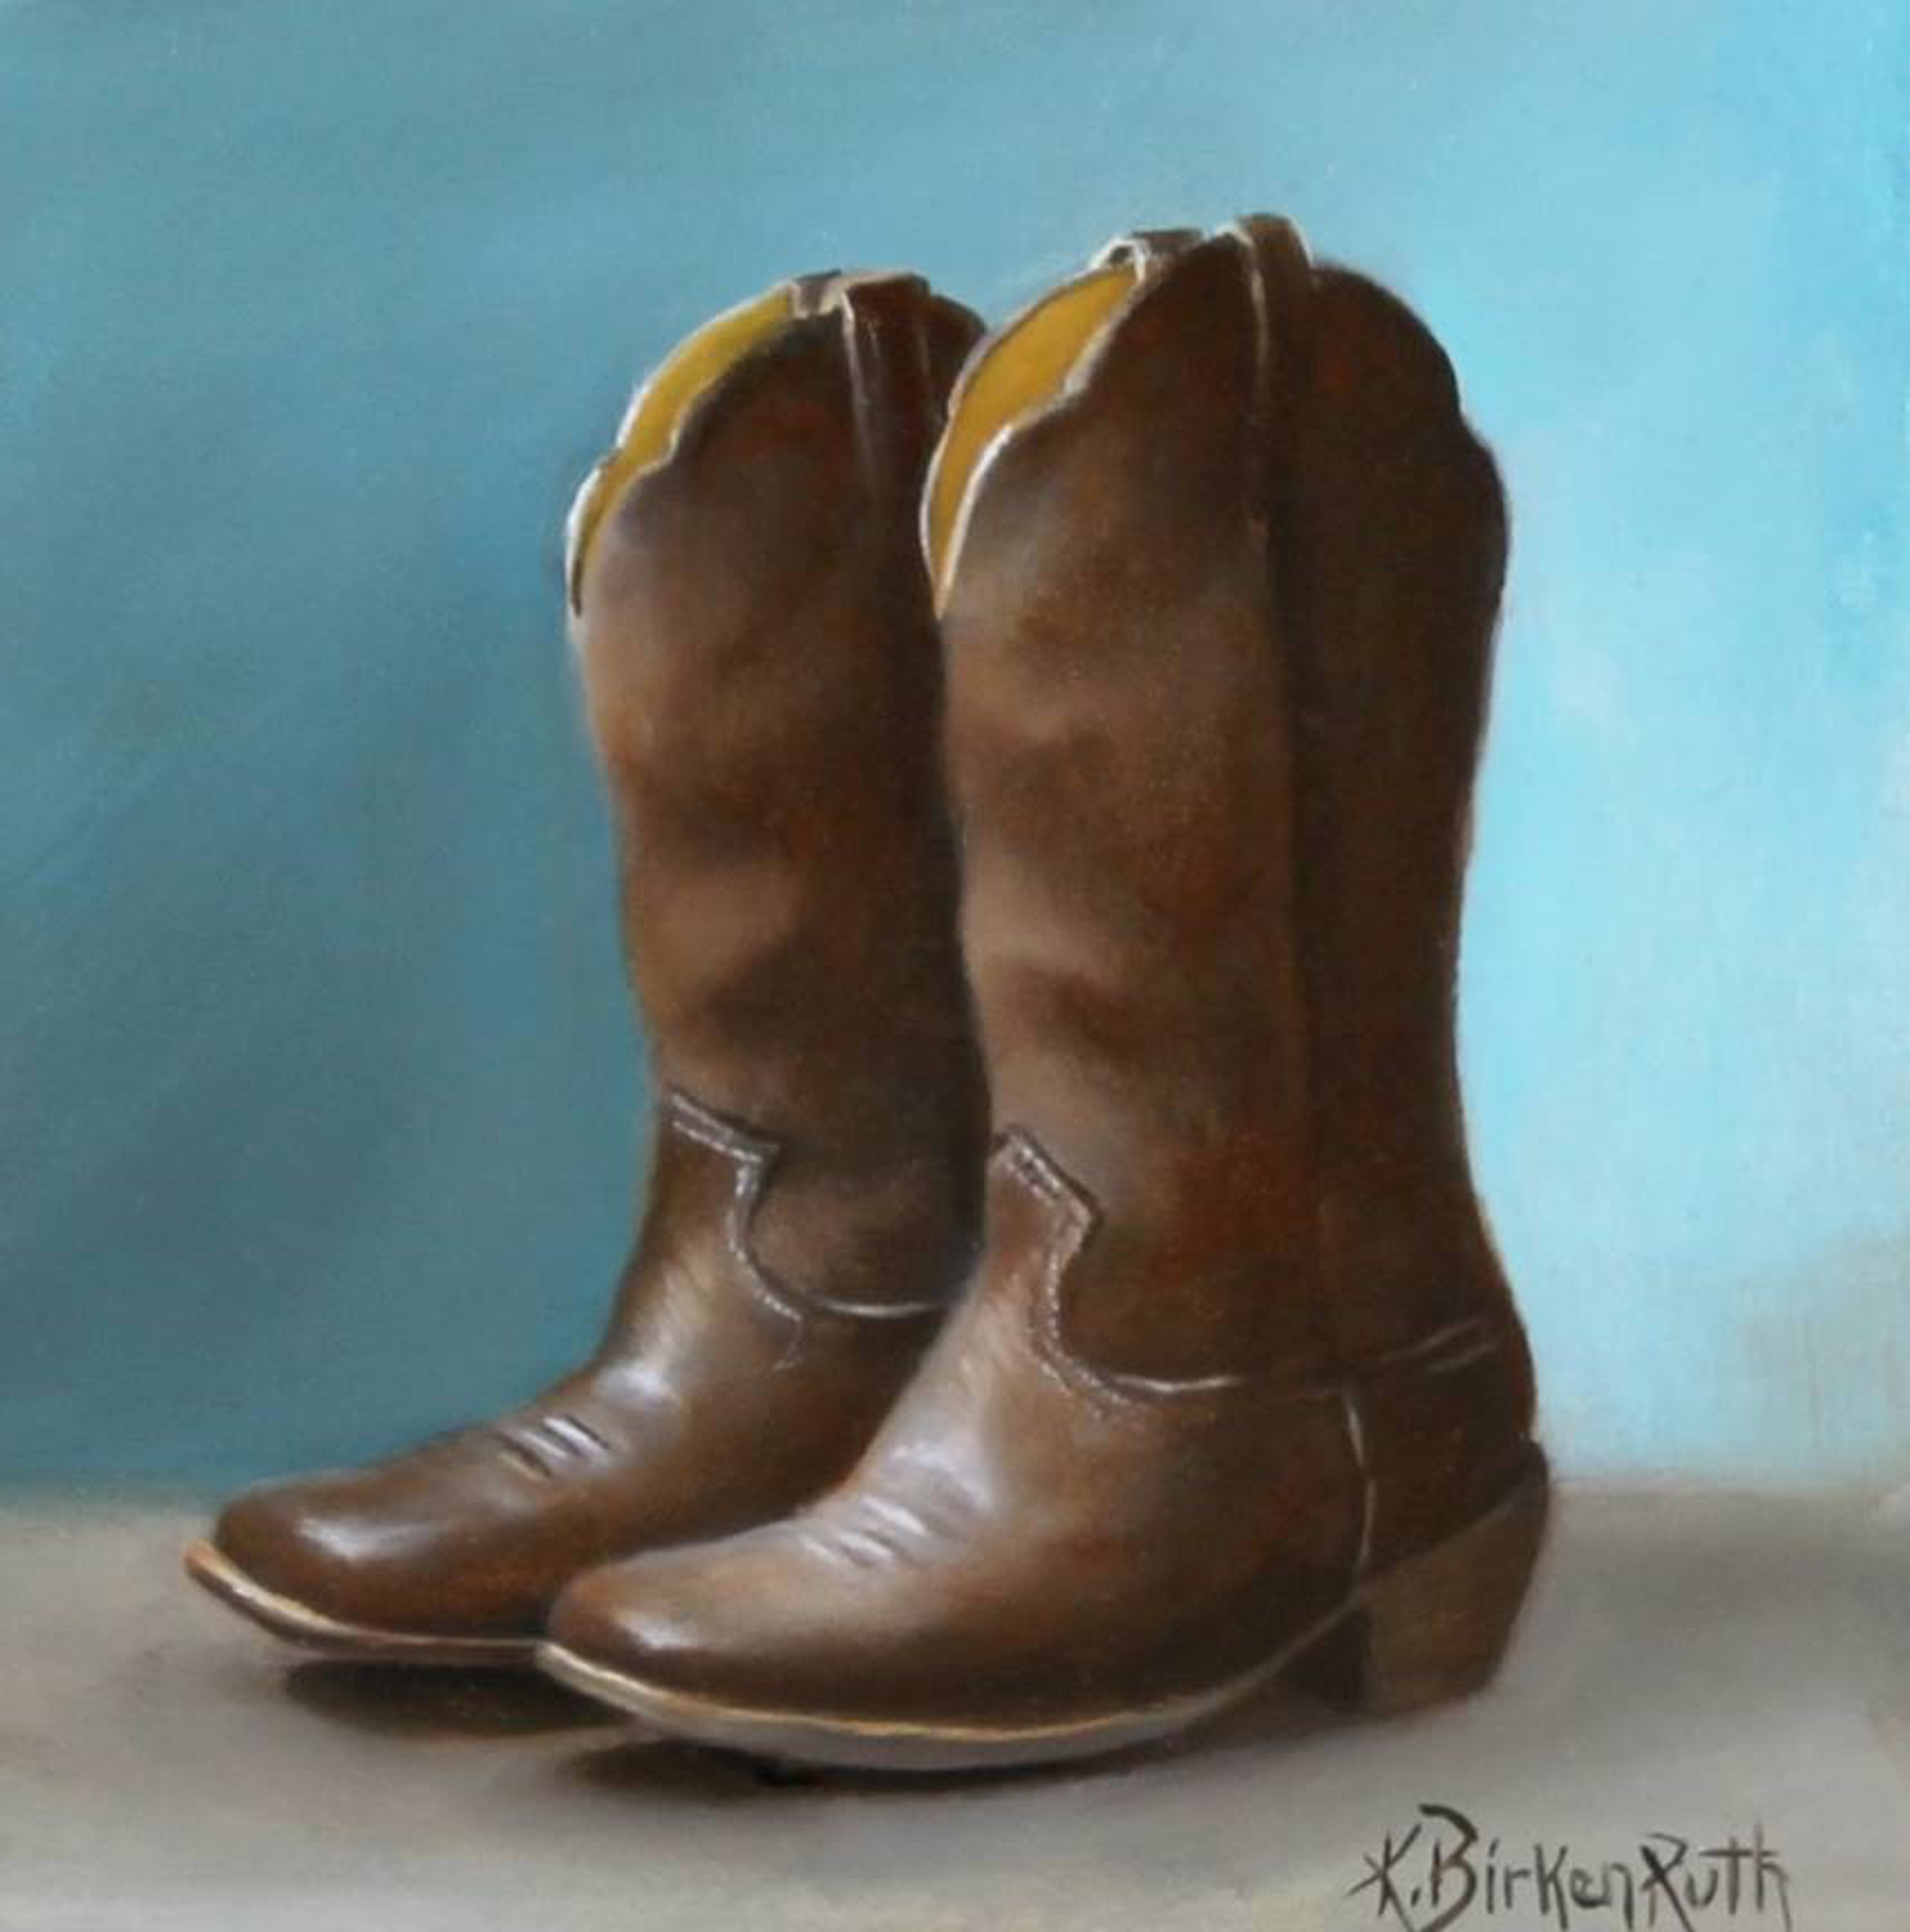 Square Toe by Kelly Birkenruth